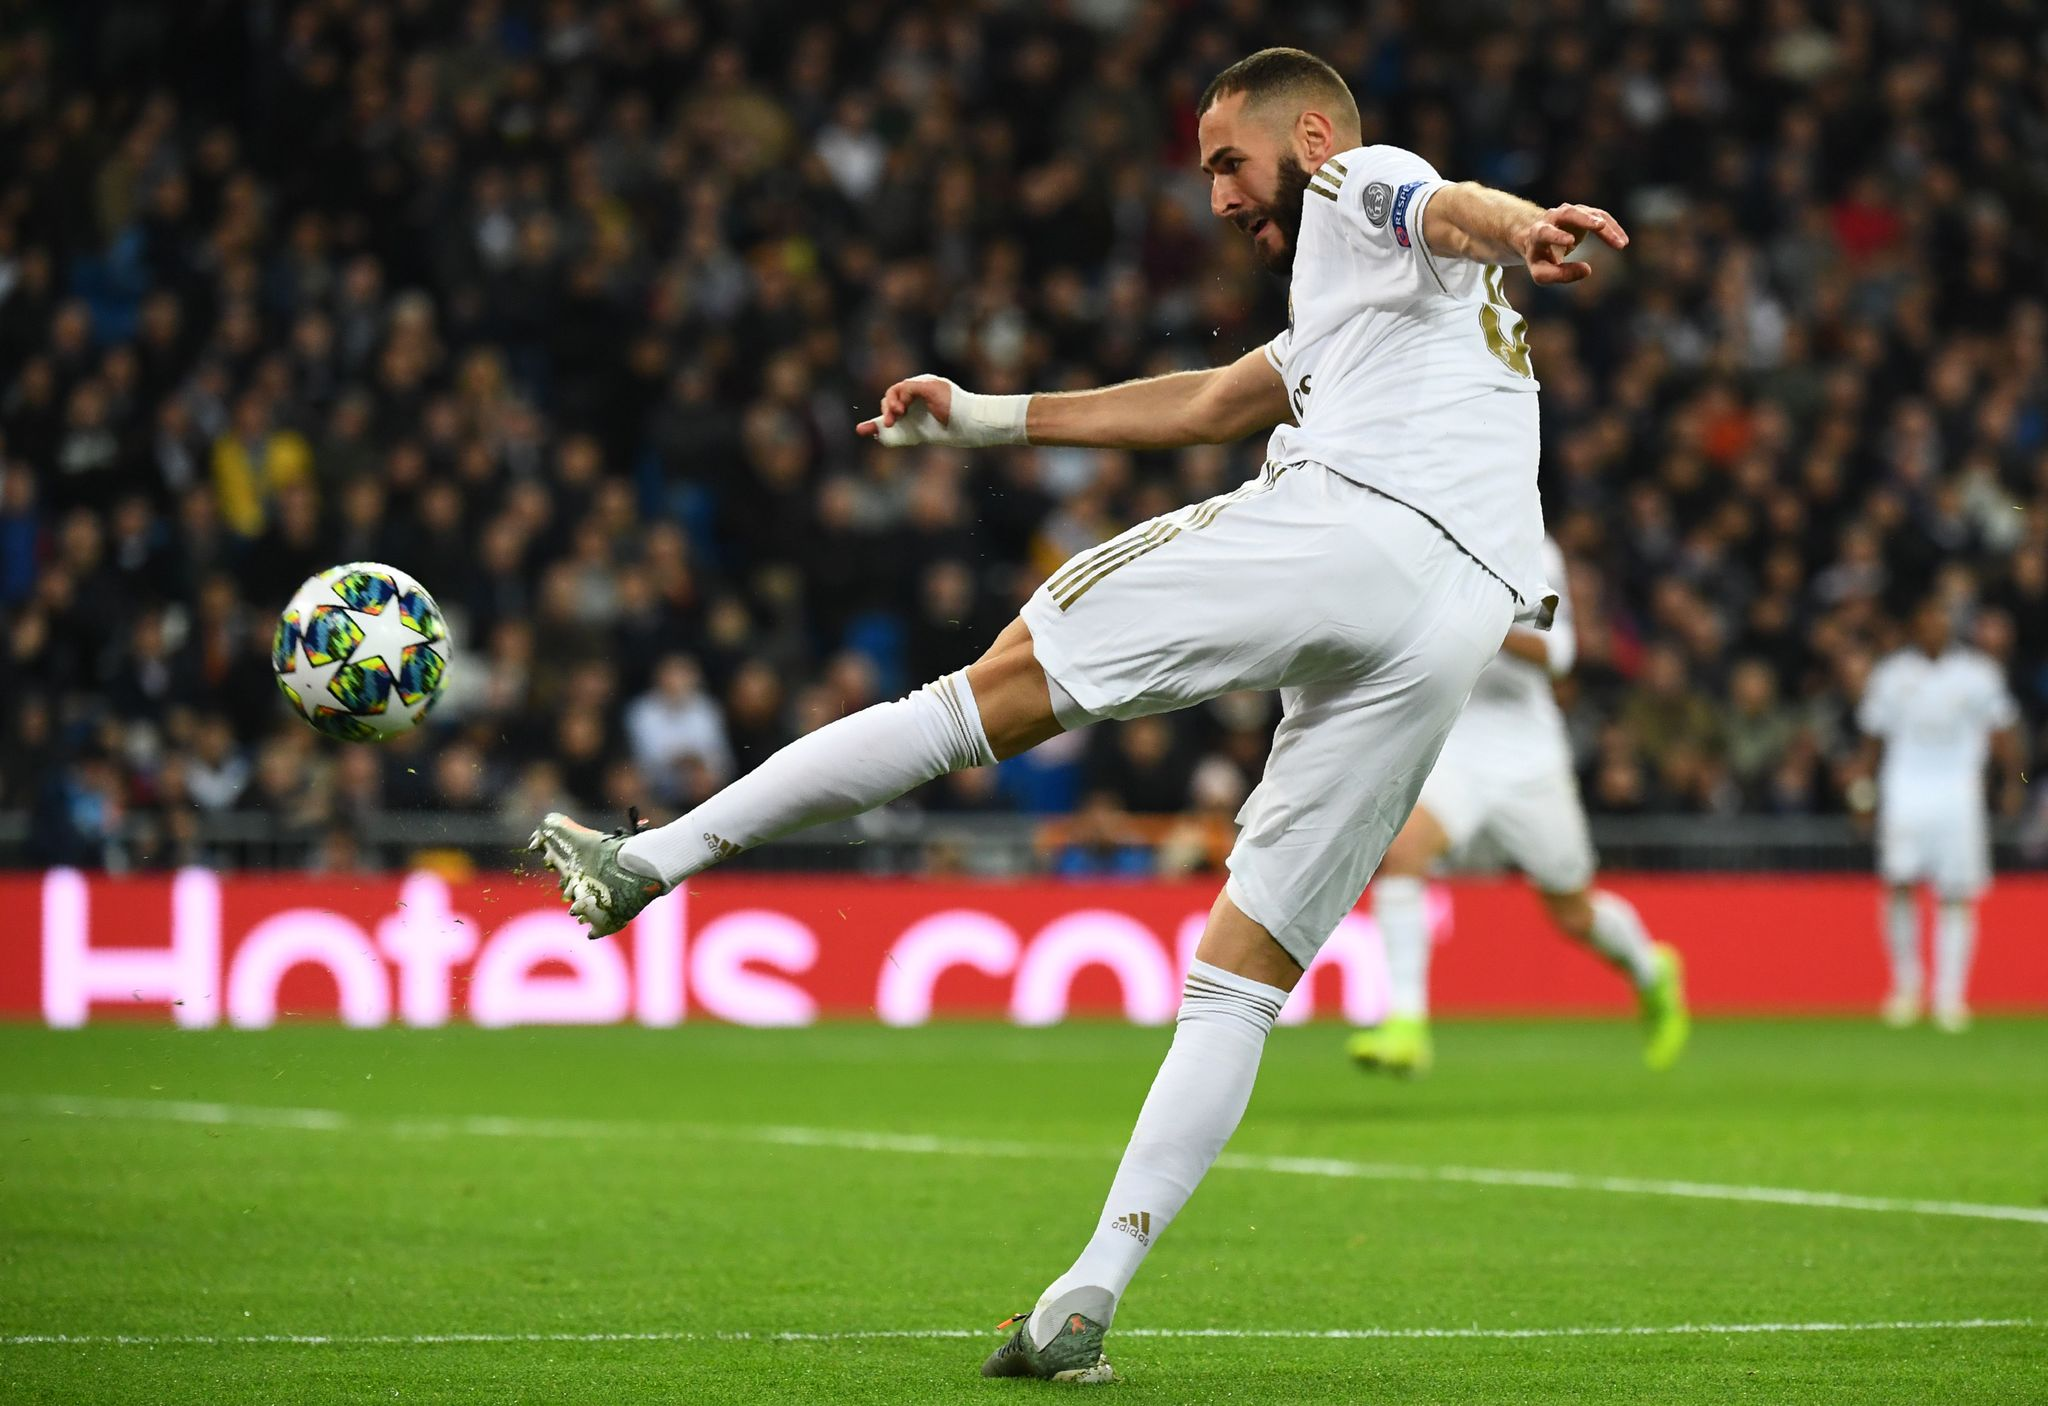 Real Madrids French forward Karim <HIT>Benzema</HIT> kicks the ball during the UEFA Champions League Group A football match between Real Madrid and Galatasaray at the Santiago Bernabeu stadium in Madrid, on November 6, 2019. (Photo by GABRIEL BOUYS / AFP)